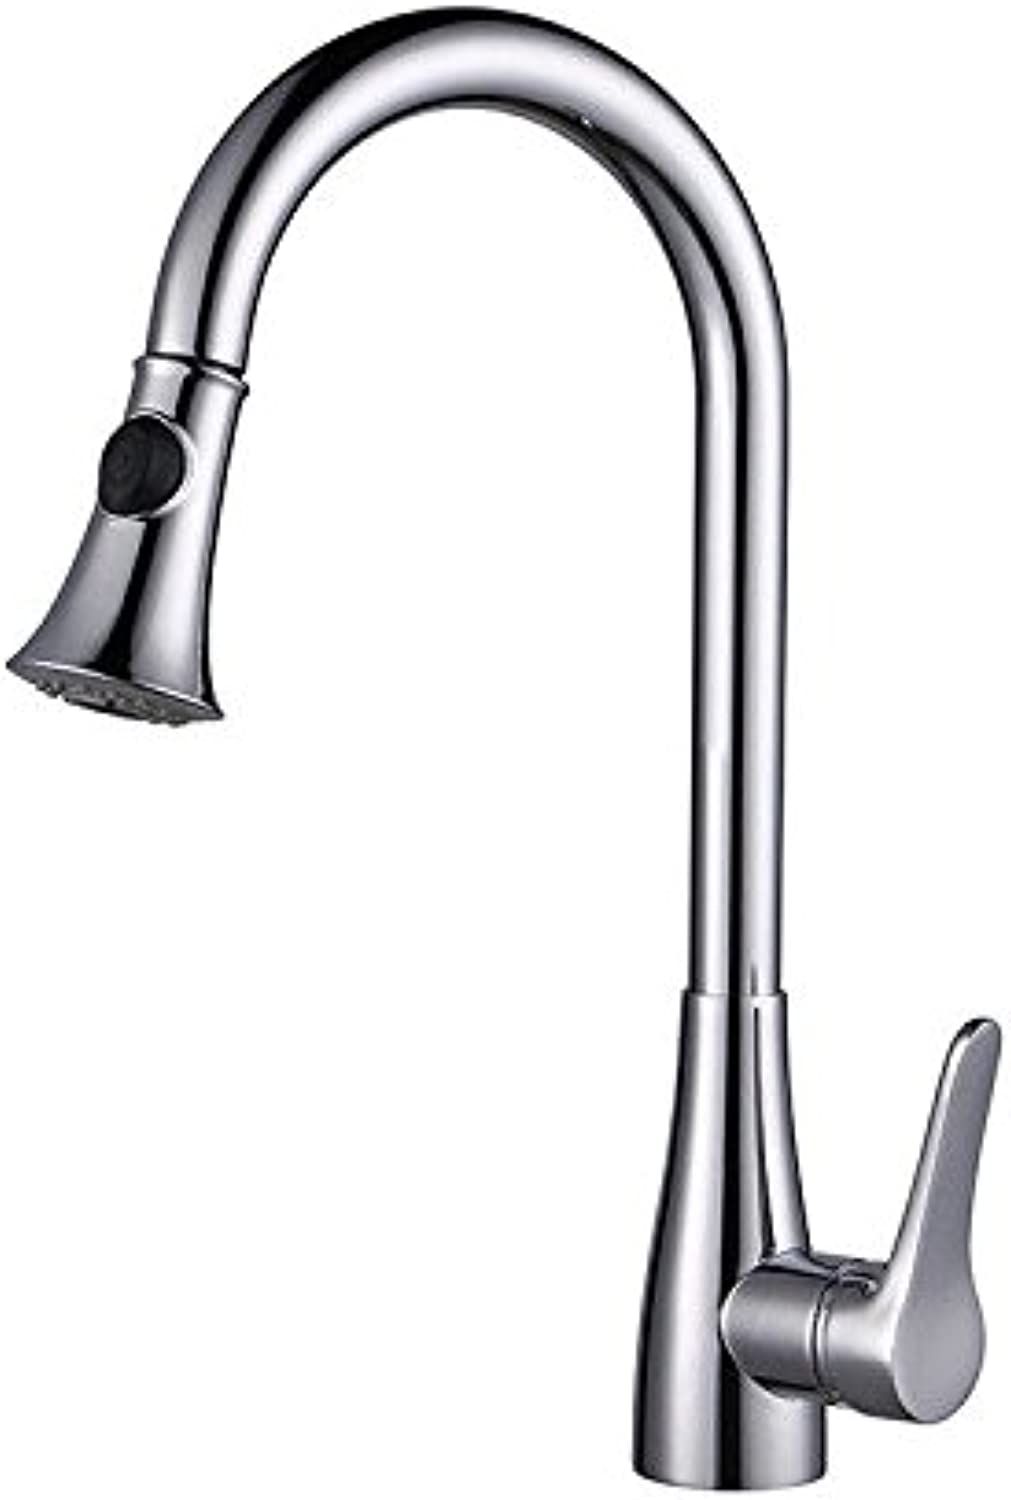 Gyps Faucet Basin Mixer Tap Waterfall Faucet Antique Bathroom The sink faucet kitchen pull-down kitchen faucet chrome single hole surface cold water faucet duplex mixing Faucet